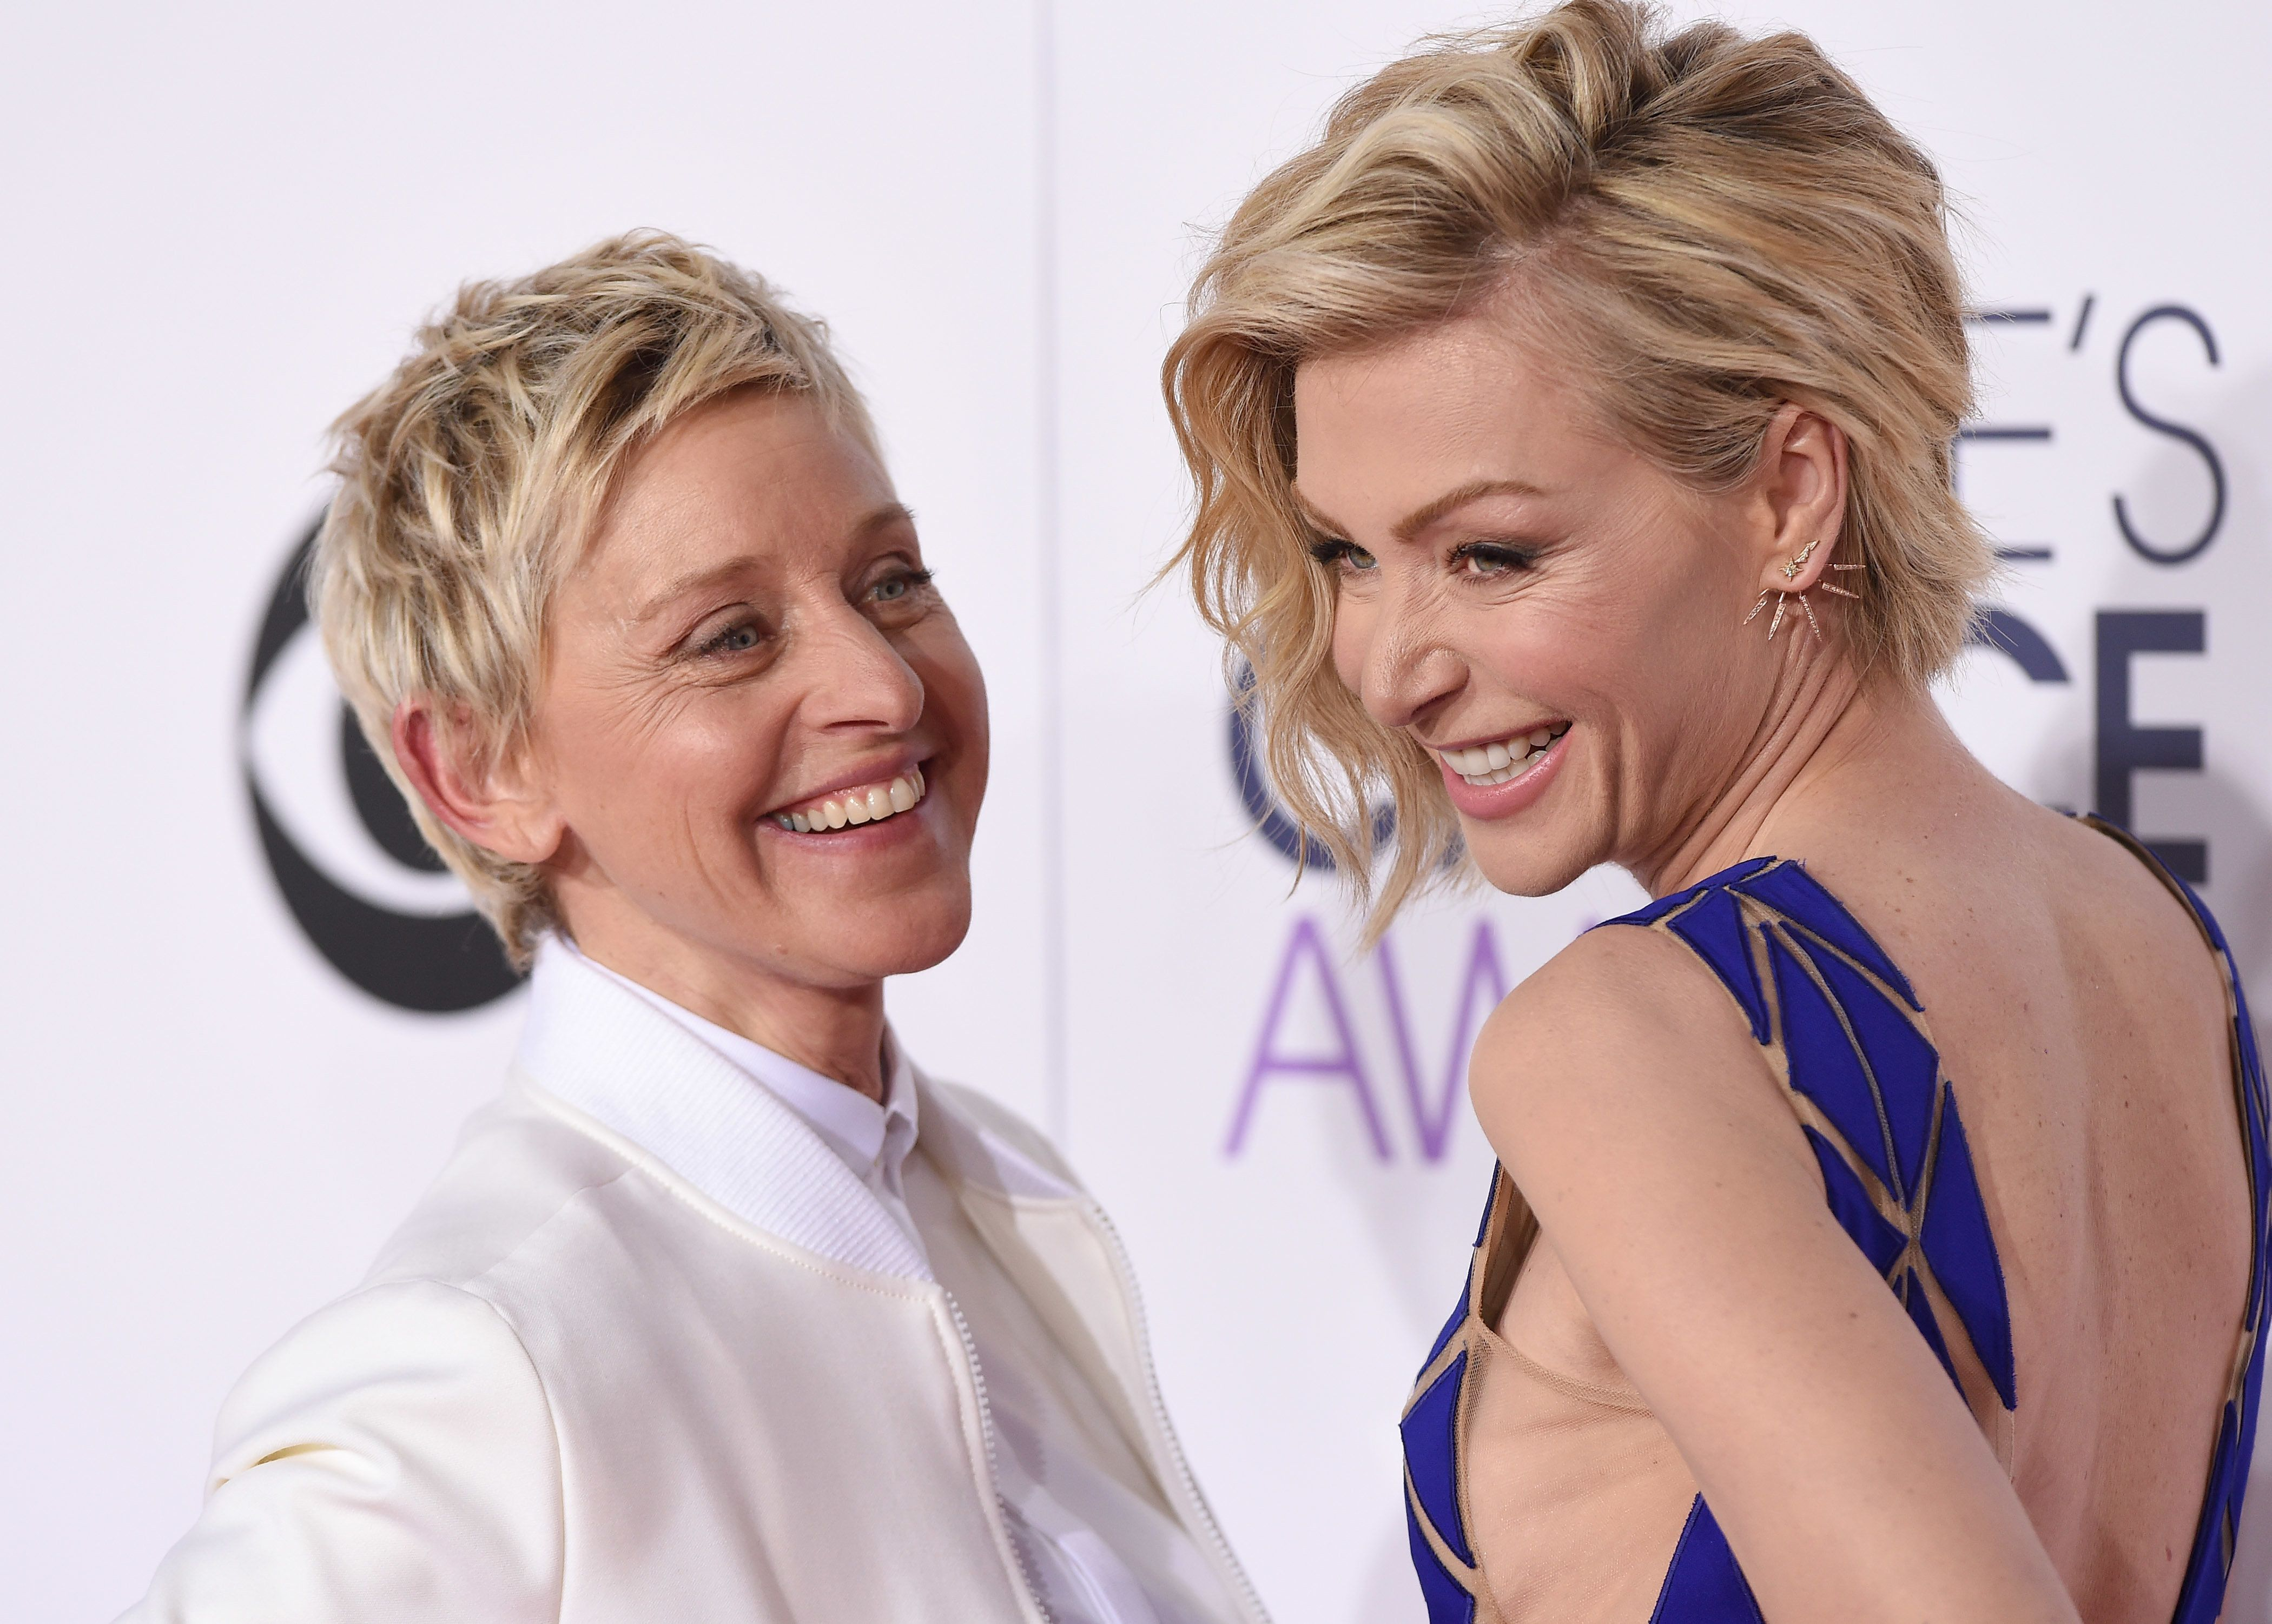 LOS ANGELES, CA - JANUARY 07:  TV personality Ellen DeGeneres (L) and actress Portia de Rossi arrive at The 41st Annual People's Choice Awards at Nokia Theatre LA Live on January 7, 2015 in Los Angeles, California.  (Photo by Axelle/Bauer-Griffin/FilmMagic)